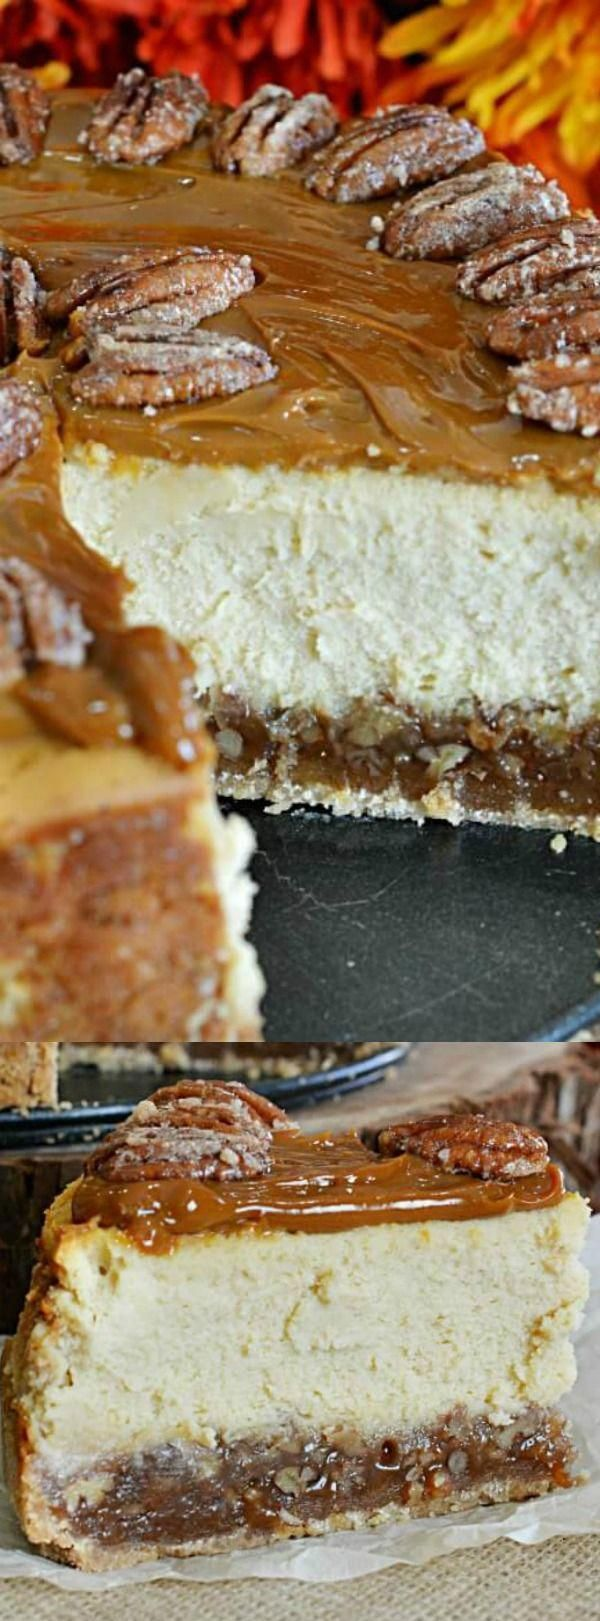 This Pecan Pie Cheesecake recipe from Lady Behind the Curtain is going to become your new favorite fall dessert! It combines two of your all time favorite fall flavors — pecan pie and cheesecake to create the ultimate dessert recipe! #cheesecakerecipes #pecanpiecheesecakerecipe